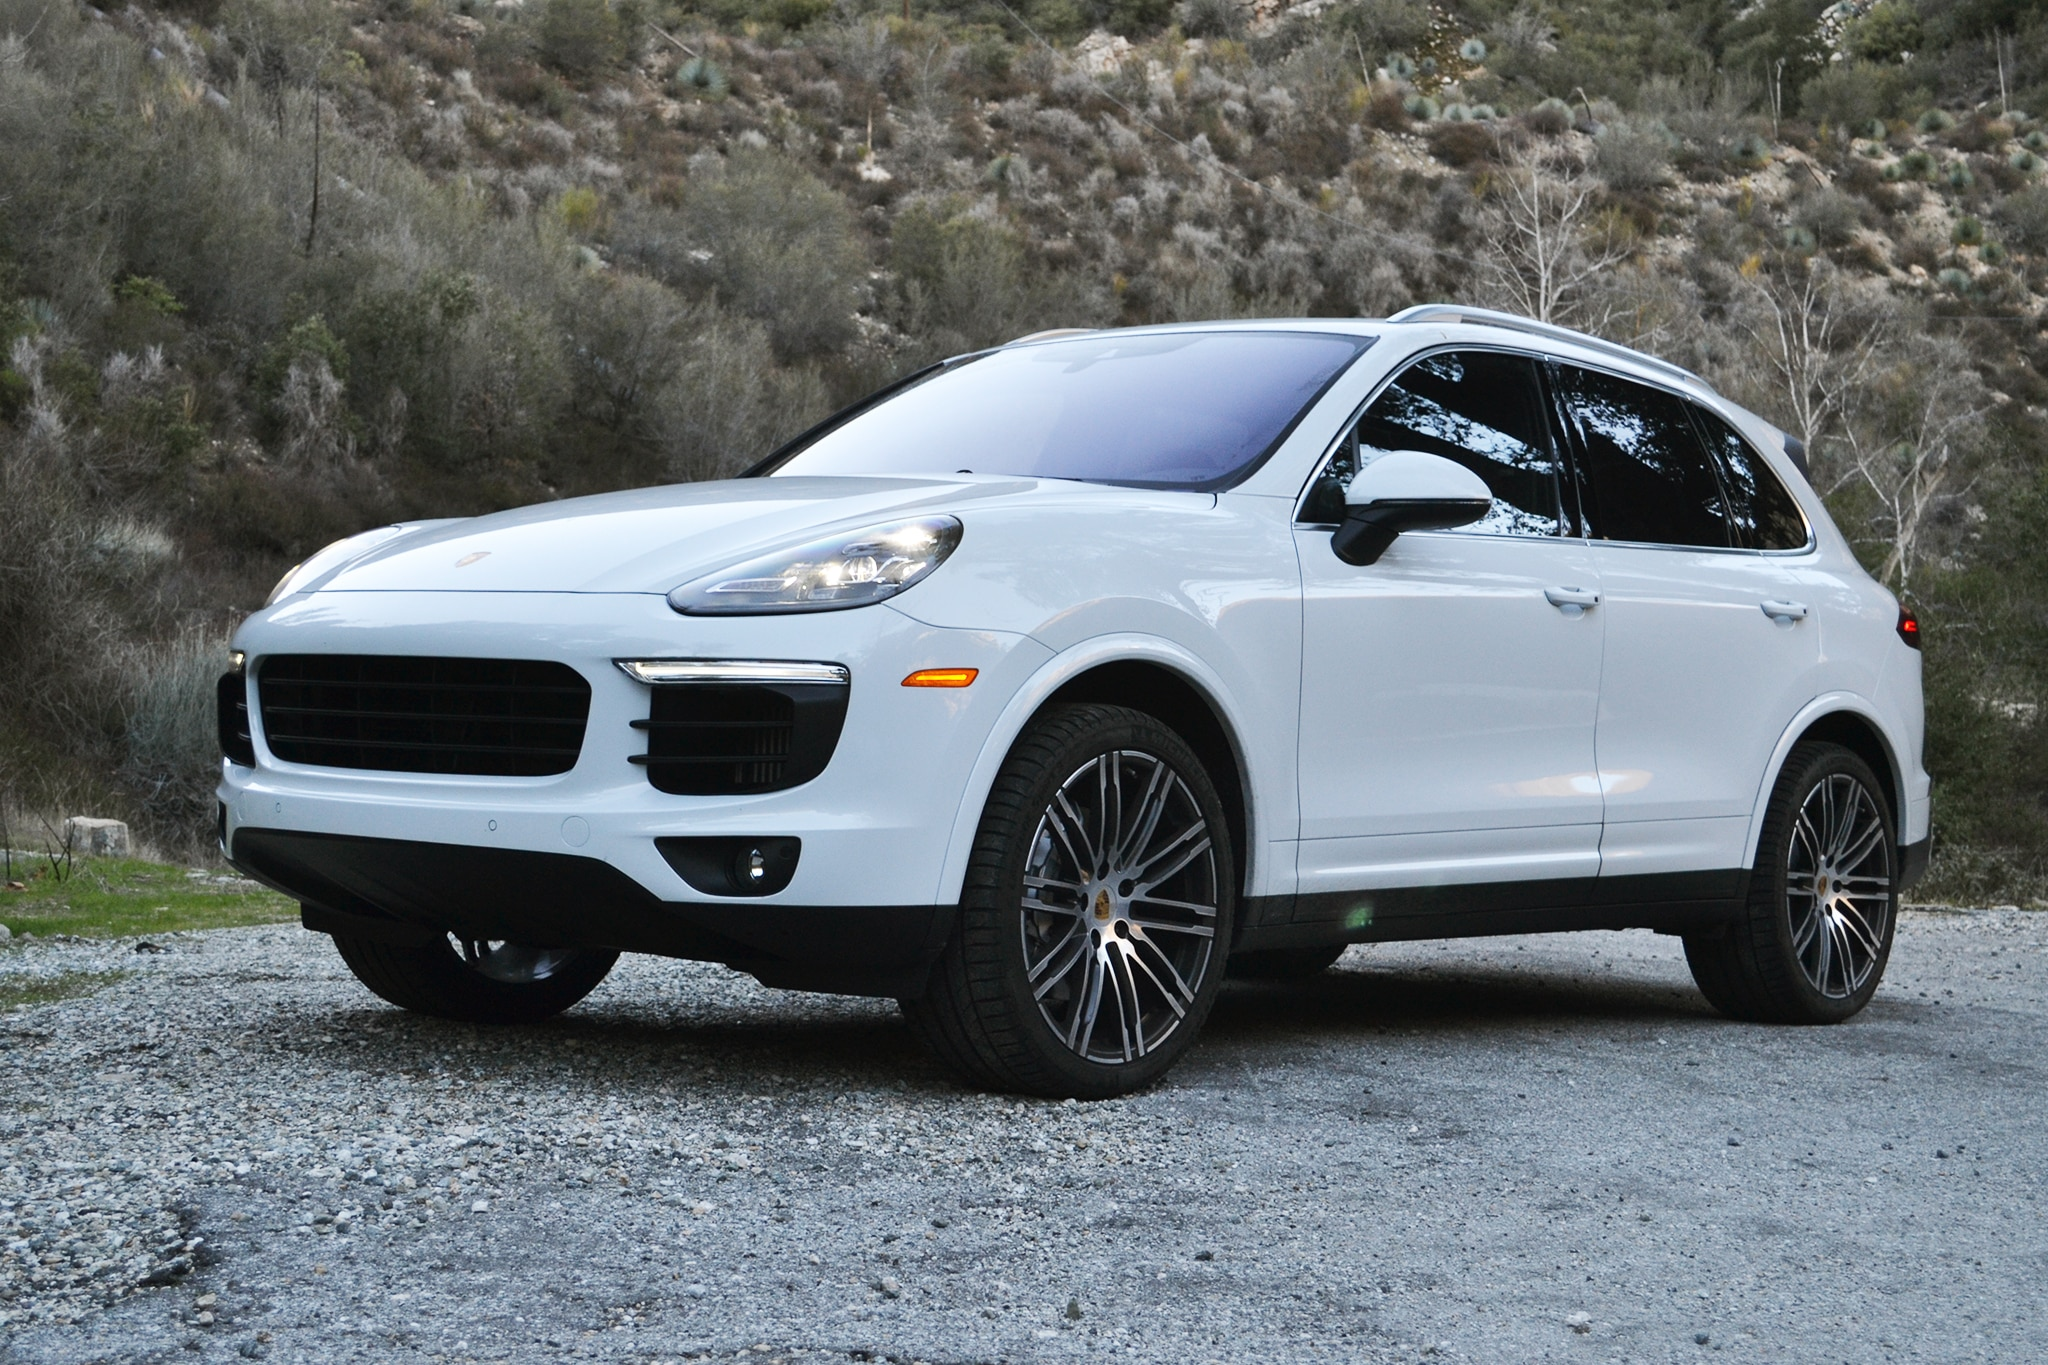 2017 Porsche Cayenne S Front Three Quarters 4